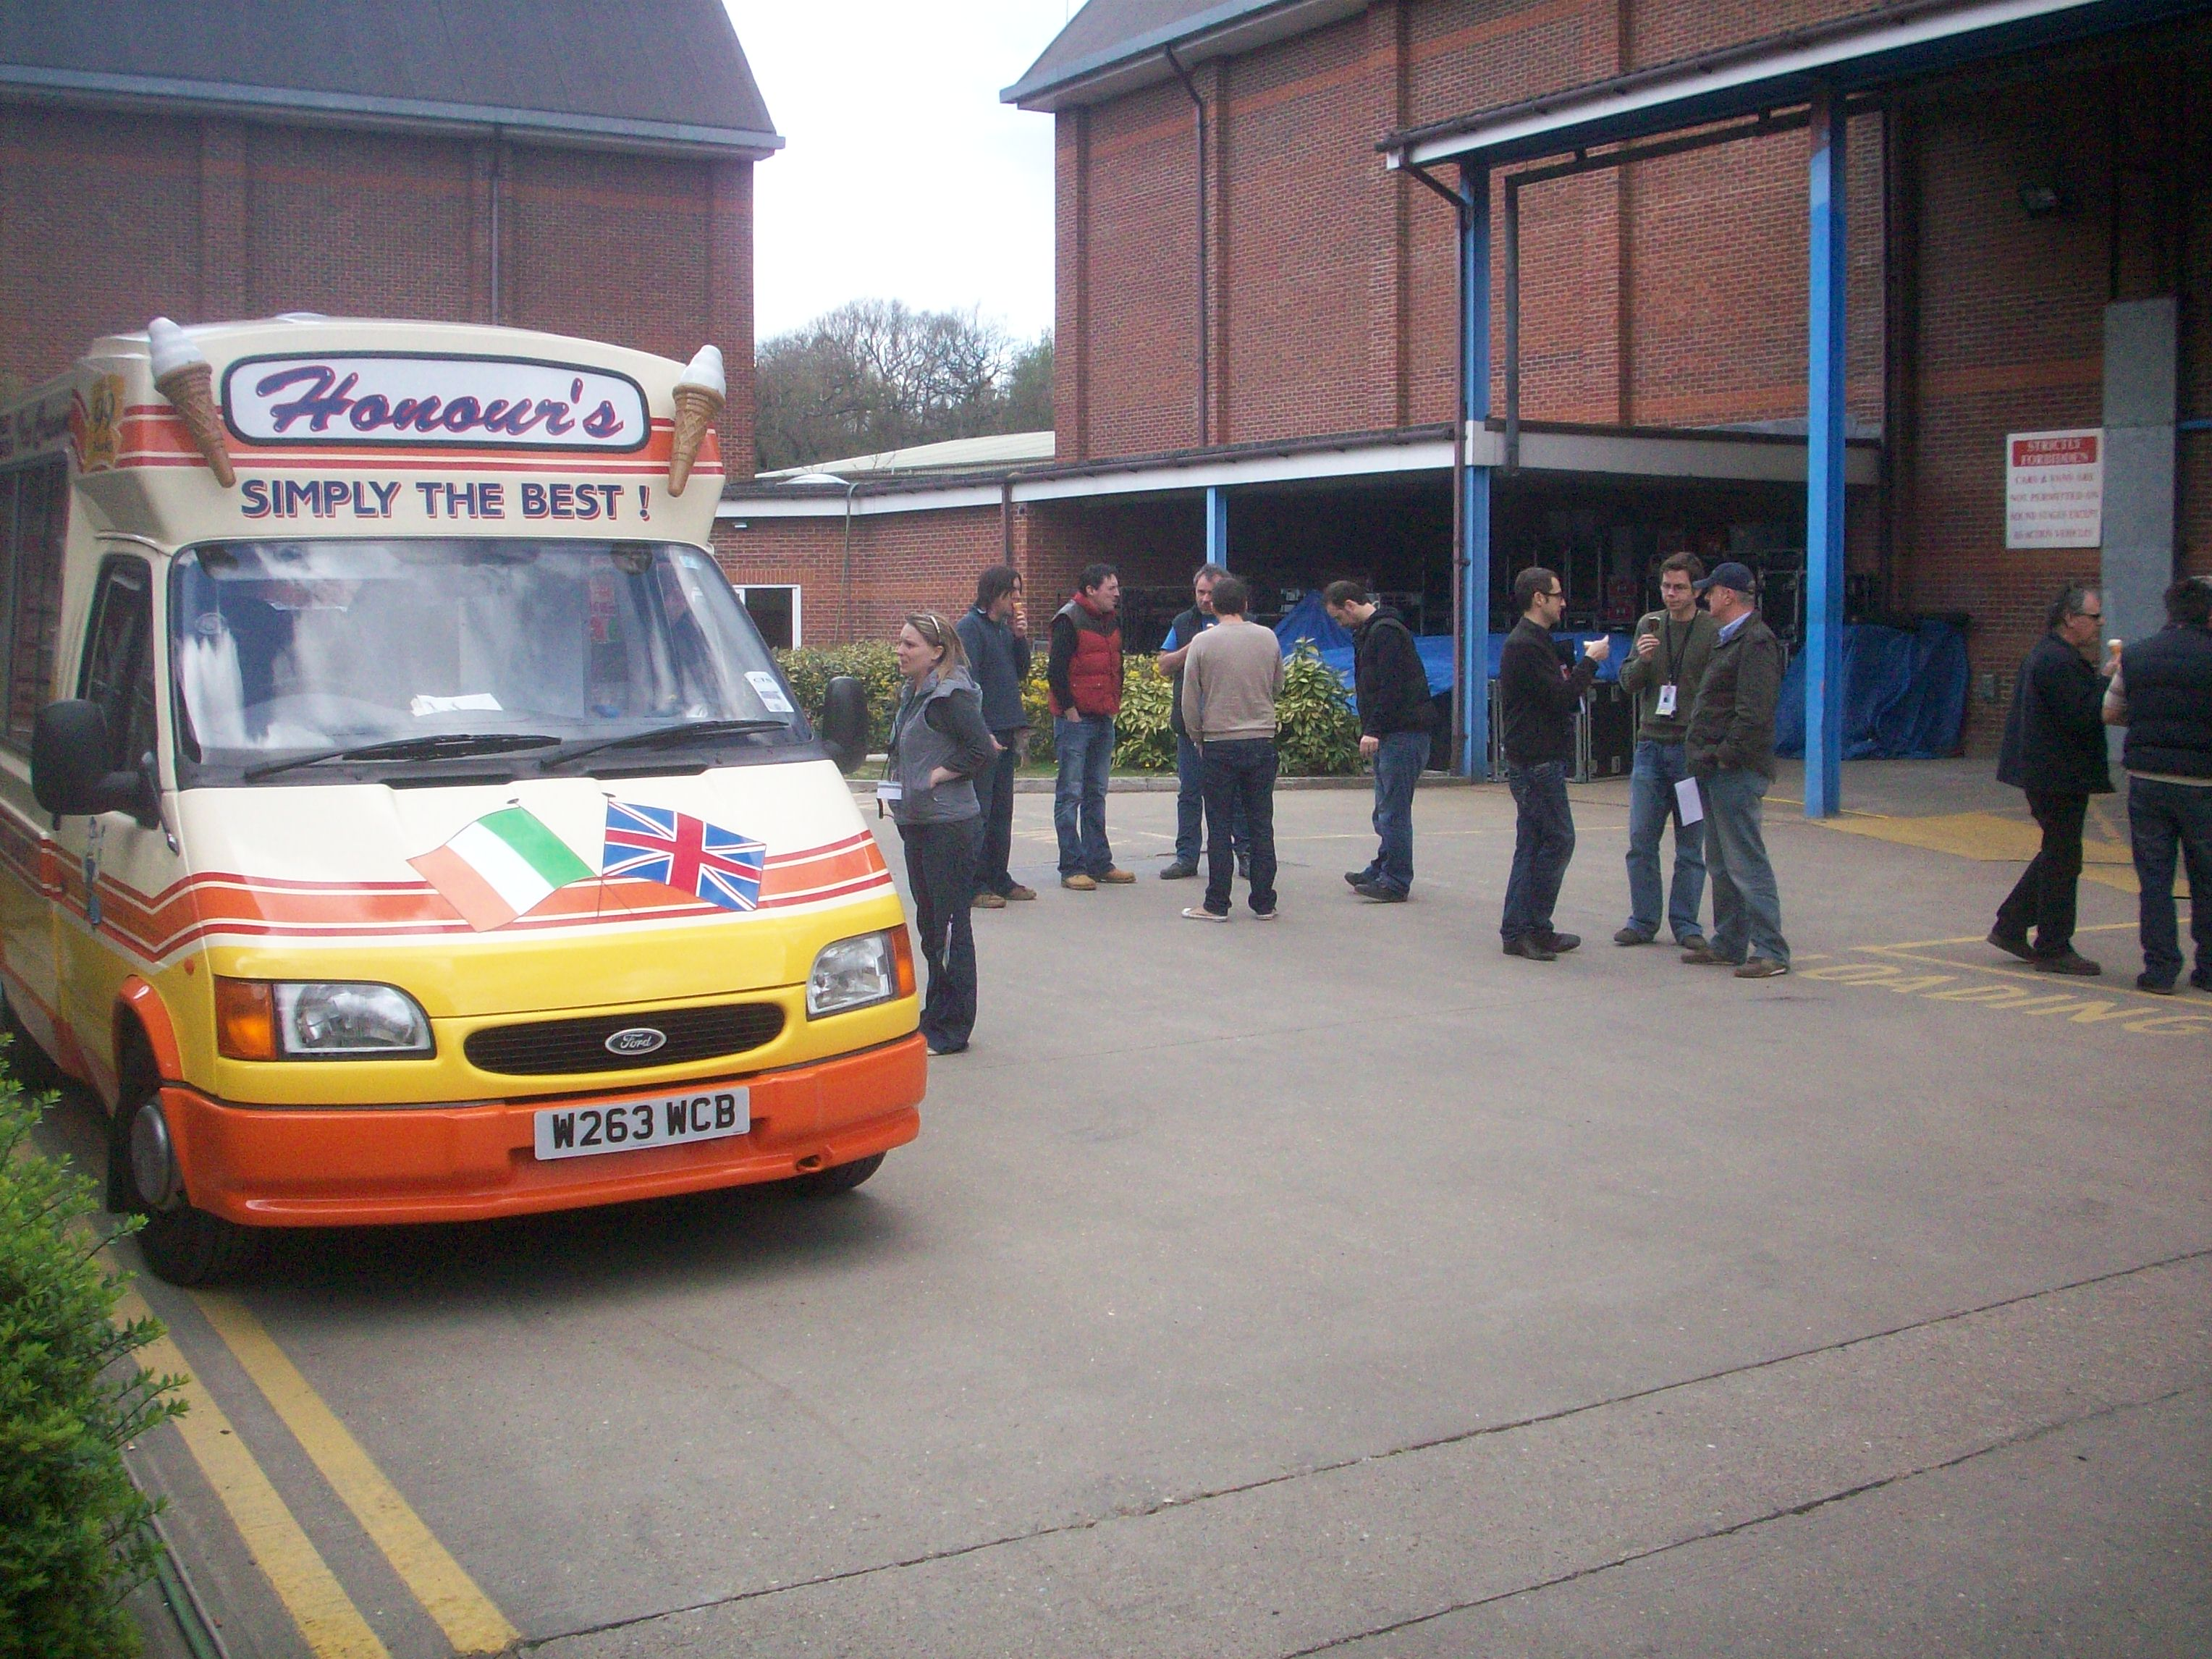 Serving ice cream corporate hire